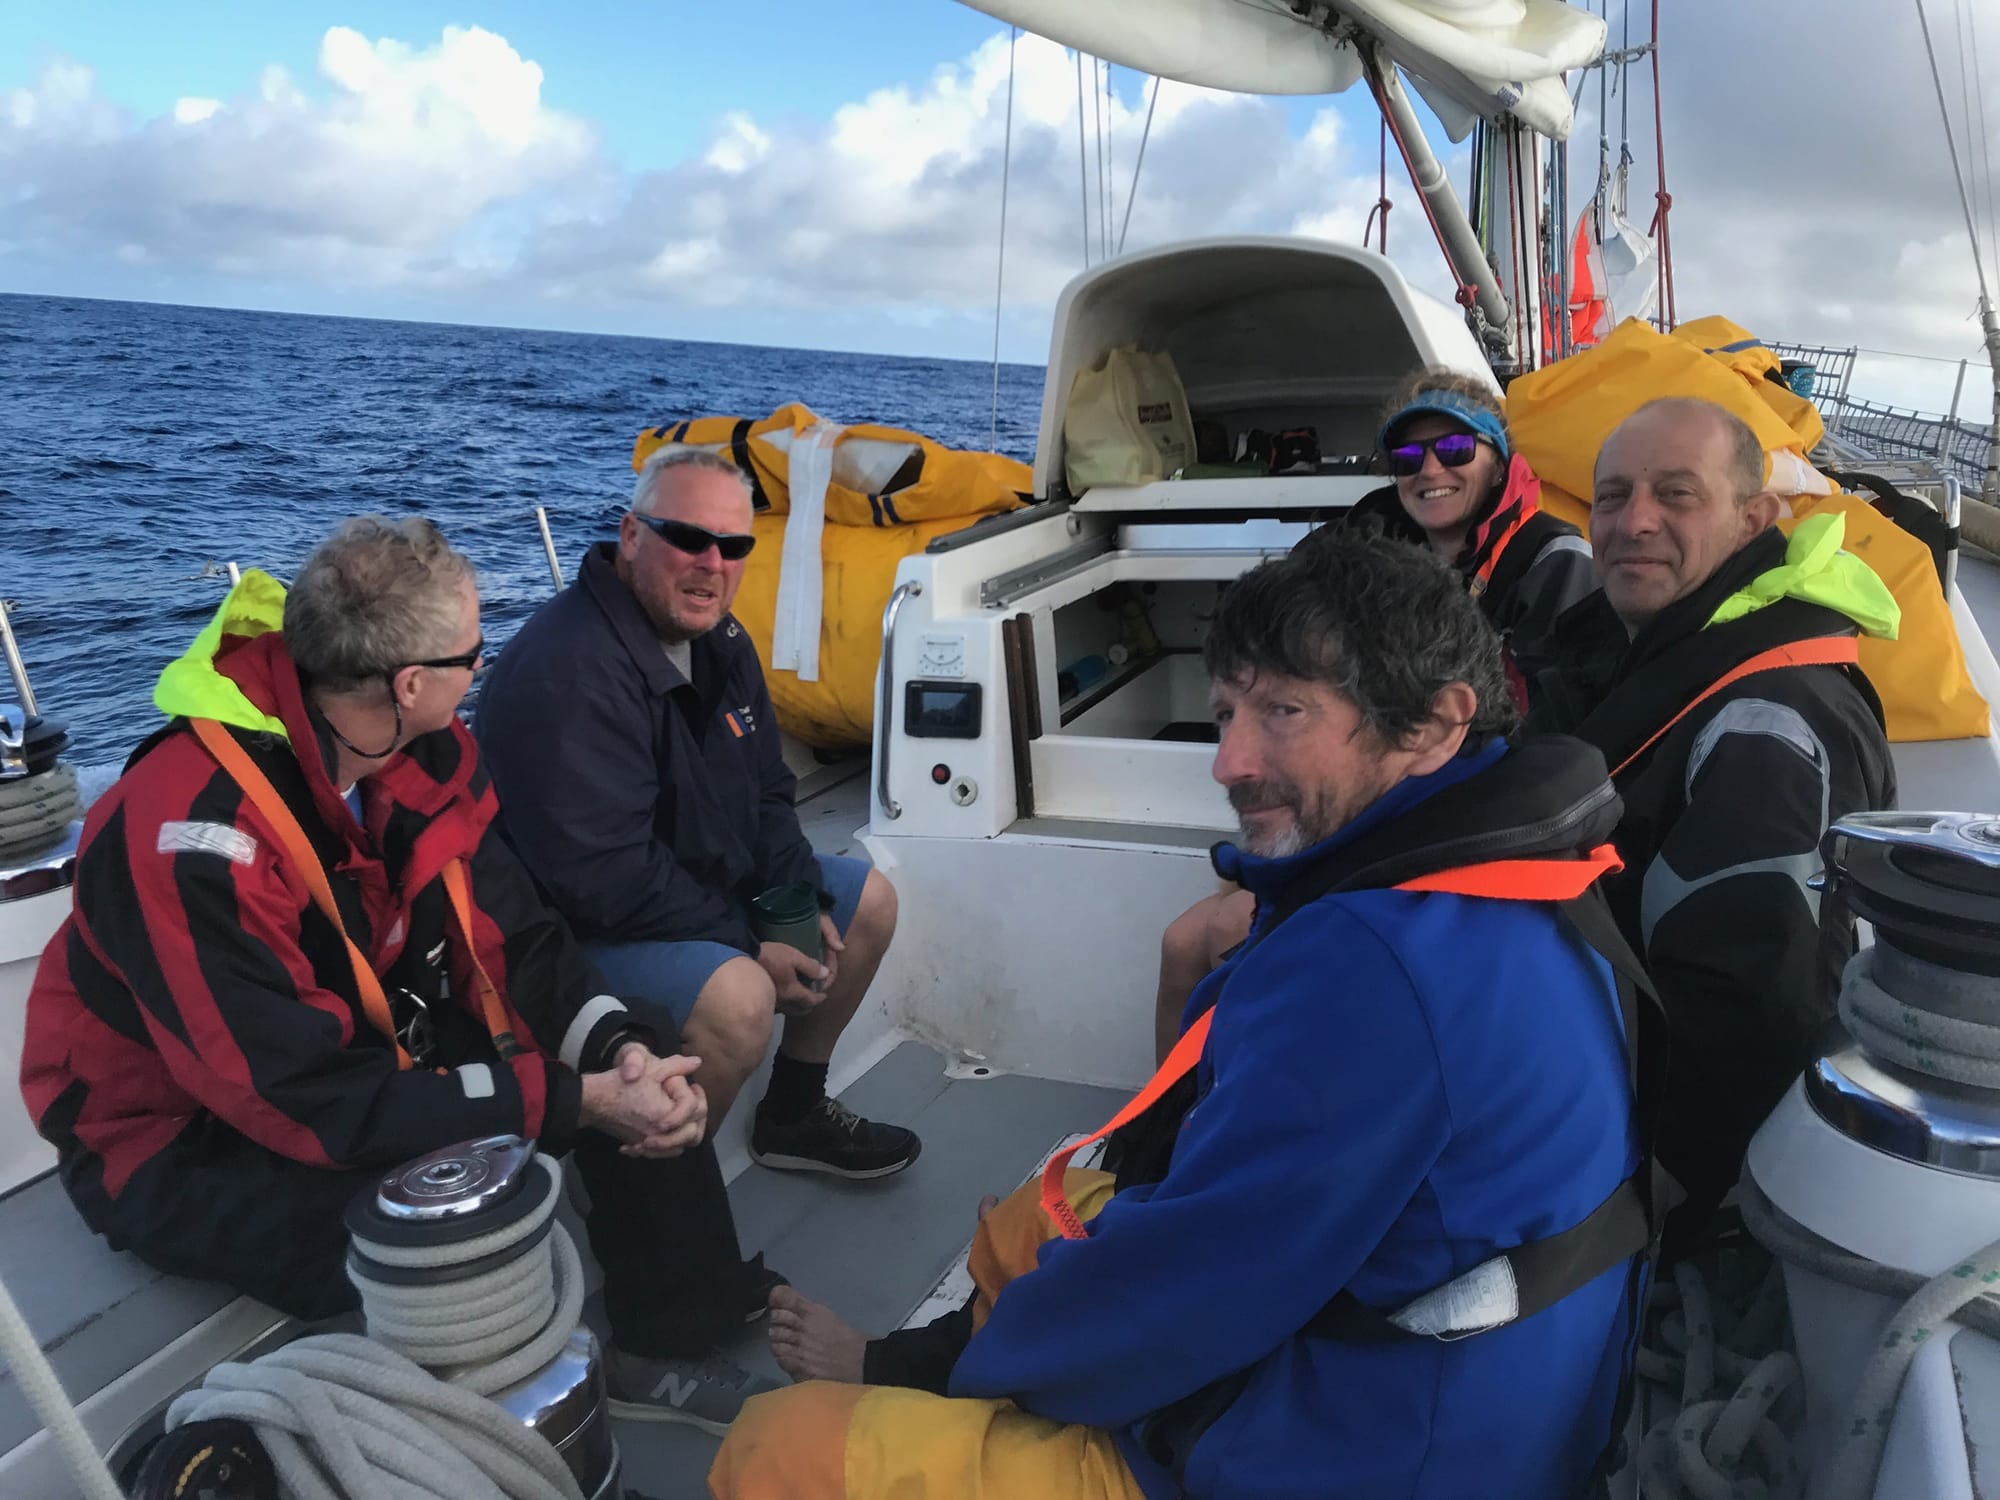 Atlantic crew sailing